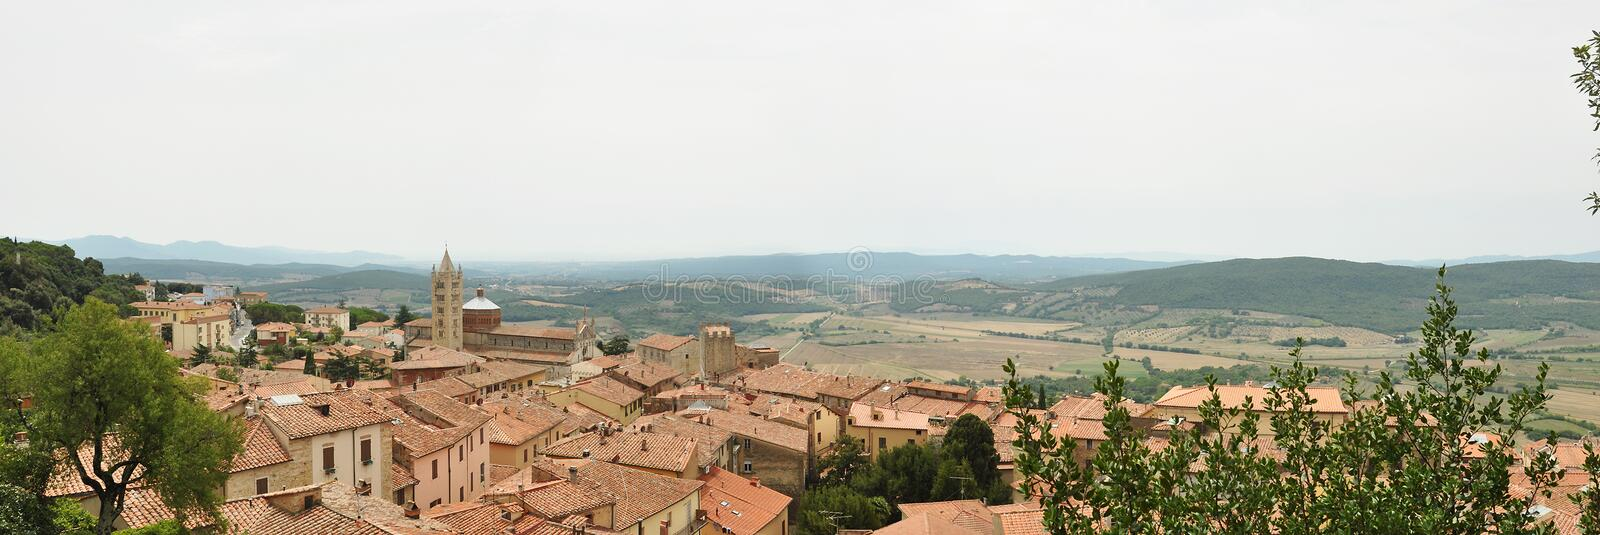 The view of Massa Marittima. stock image